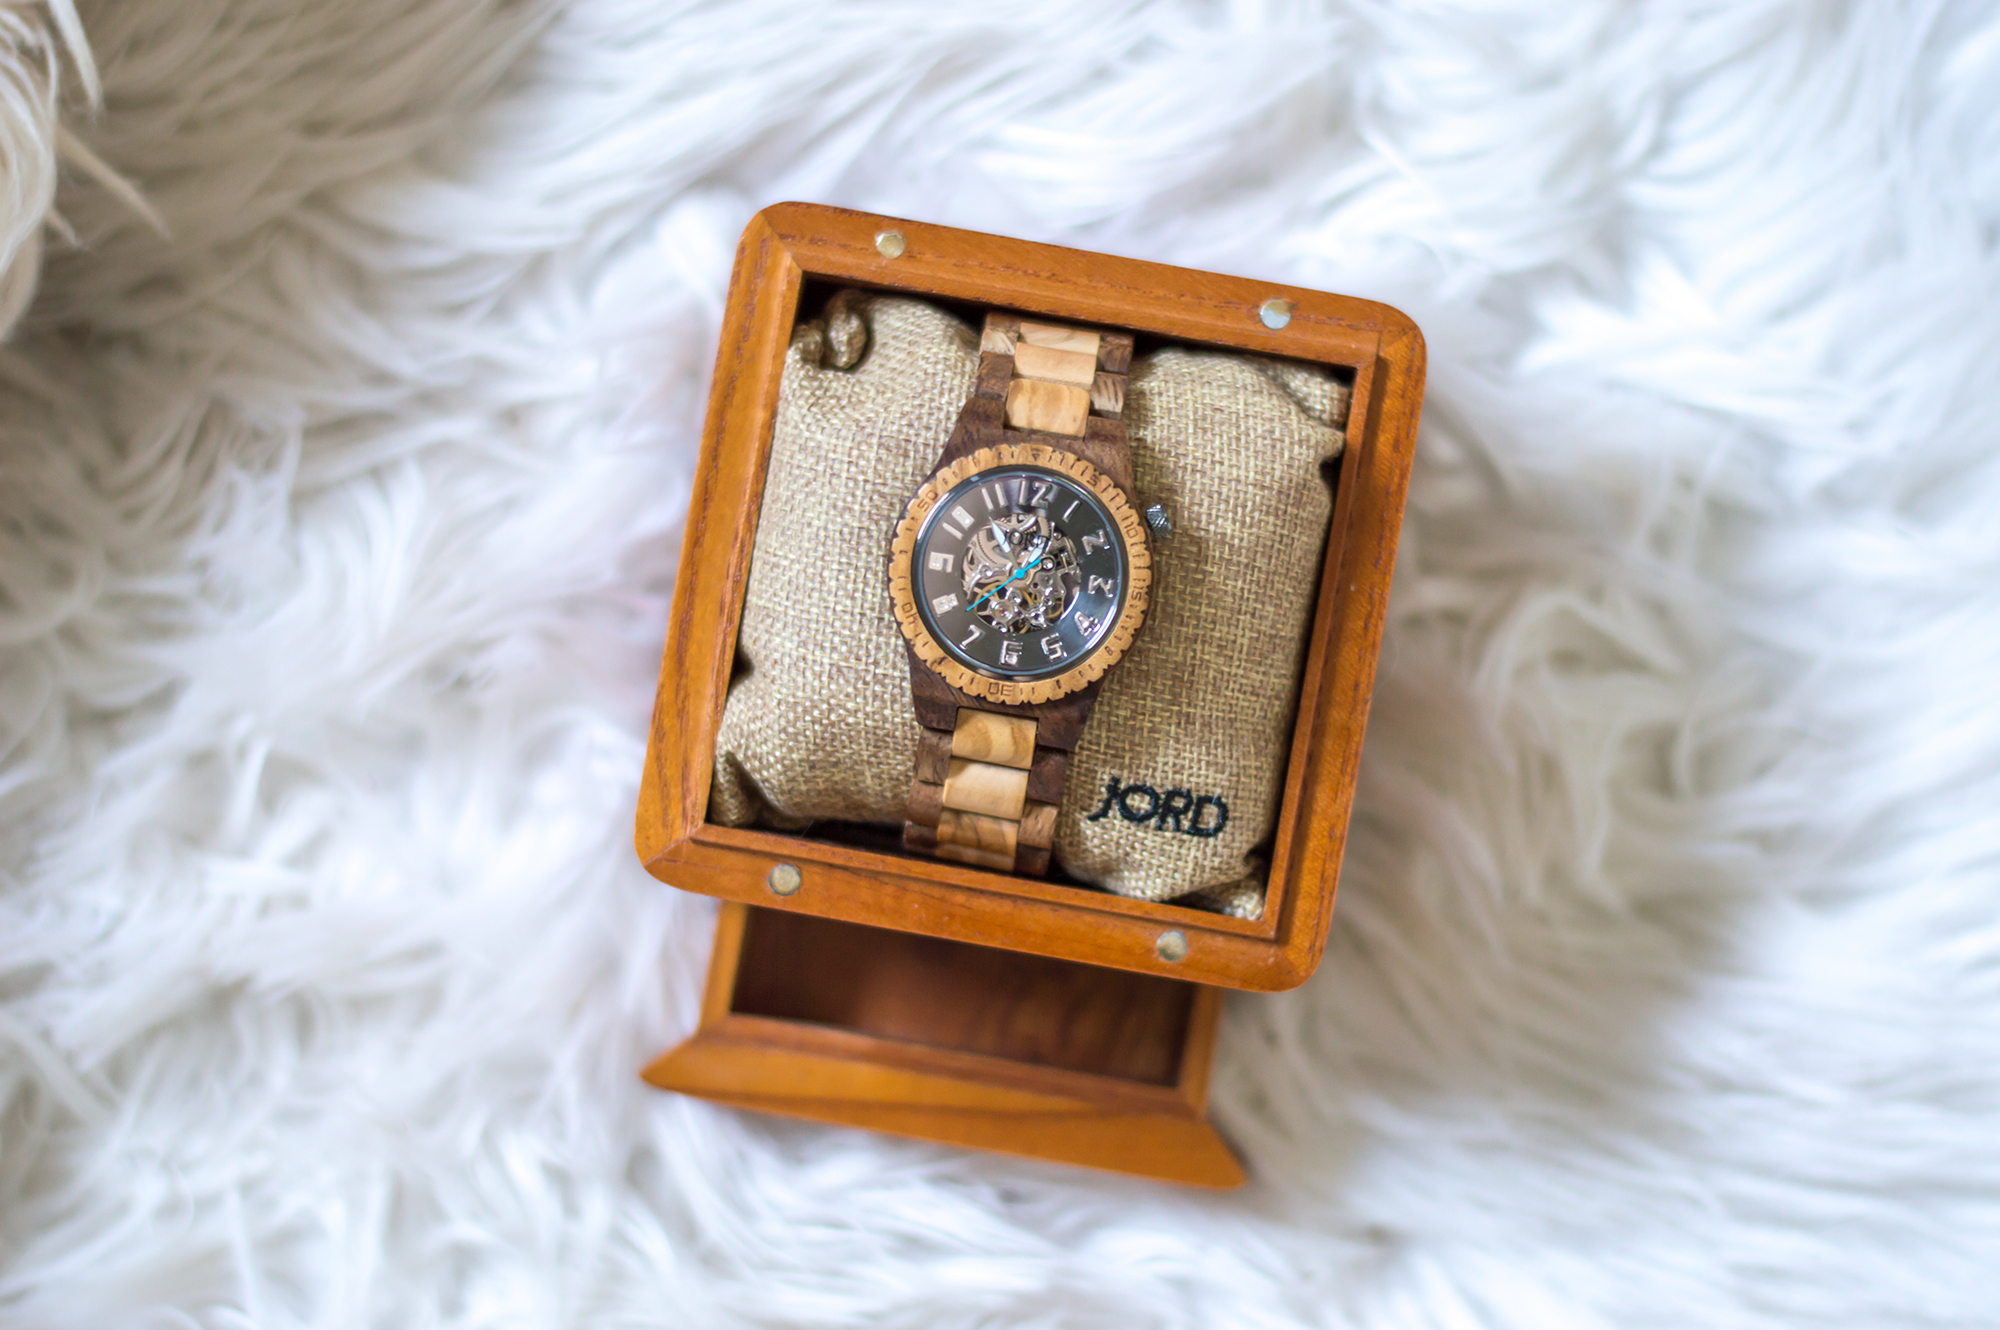 styelled-elle-elisabeth-fashion-style-blogger-jord-wood-watches-luxury-watch-dover-series-valentines-day-for-him-ootd-australian-labradoodle-05